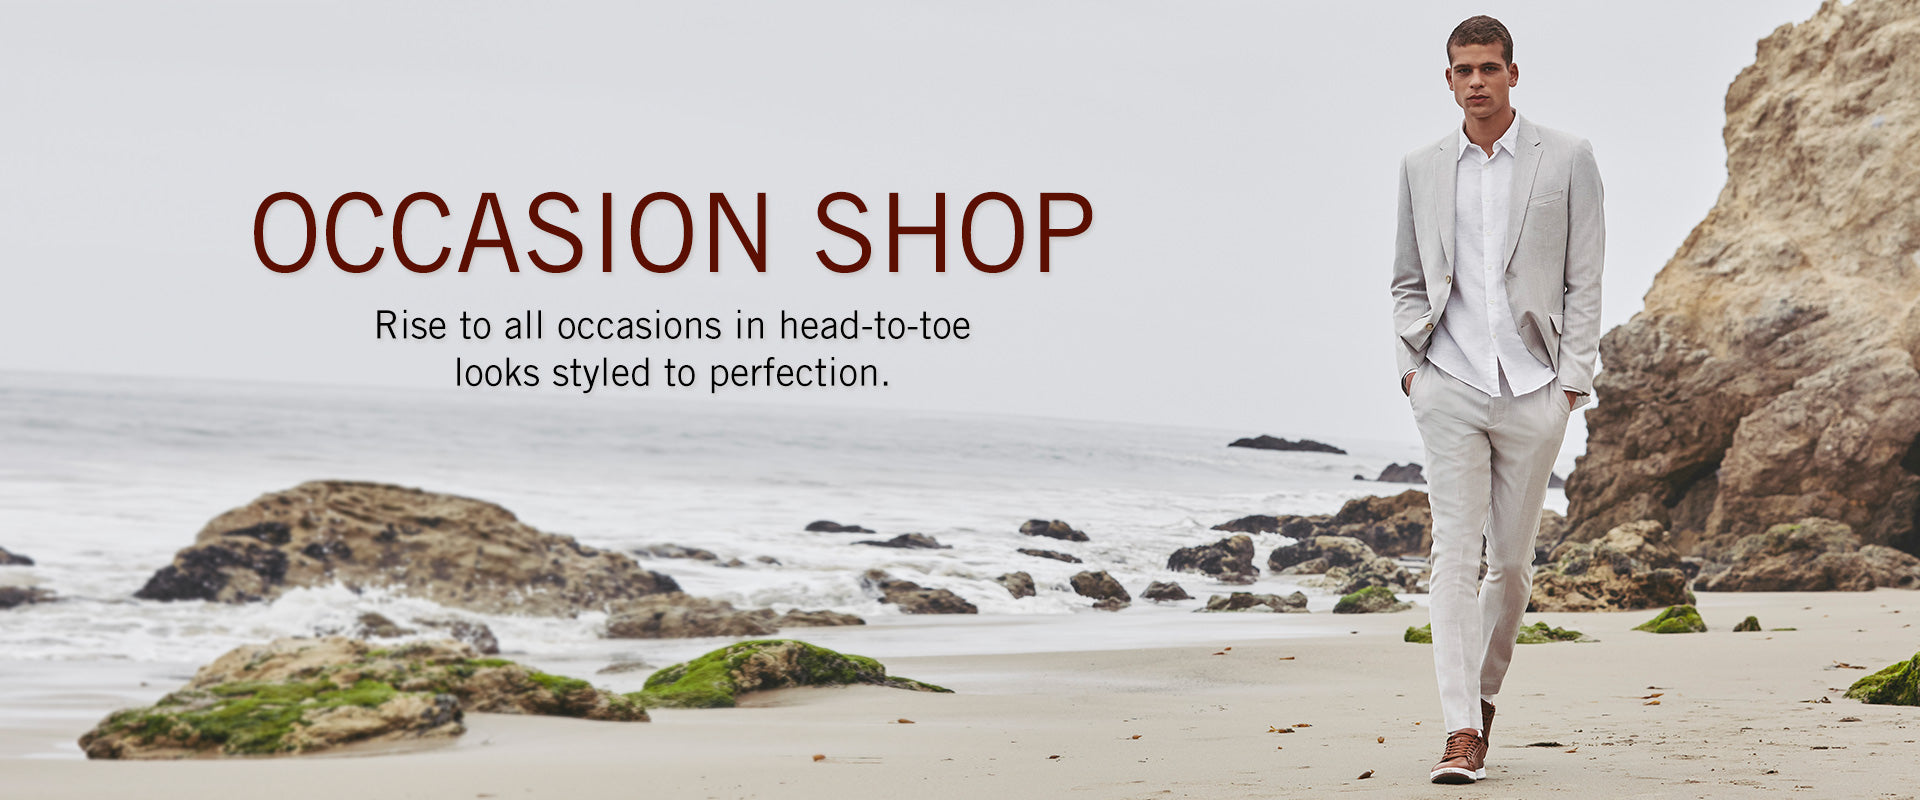 OCCASION SHOP - Rise to all occasion in head-to-toe looks styled to perfection.